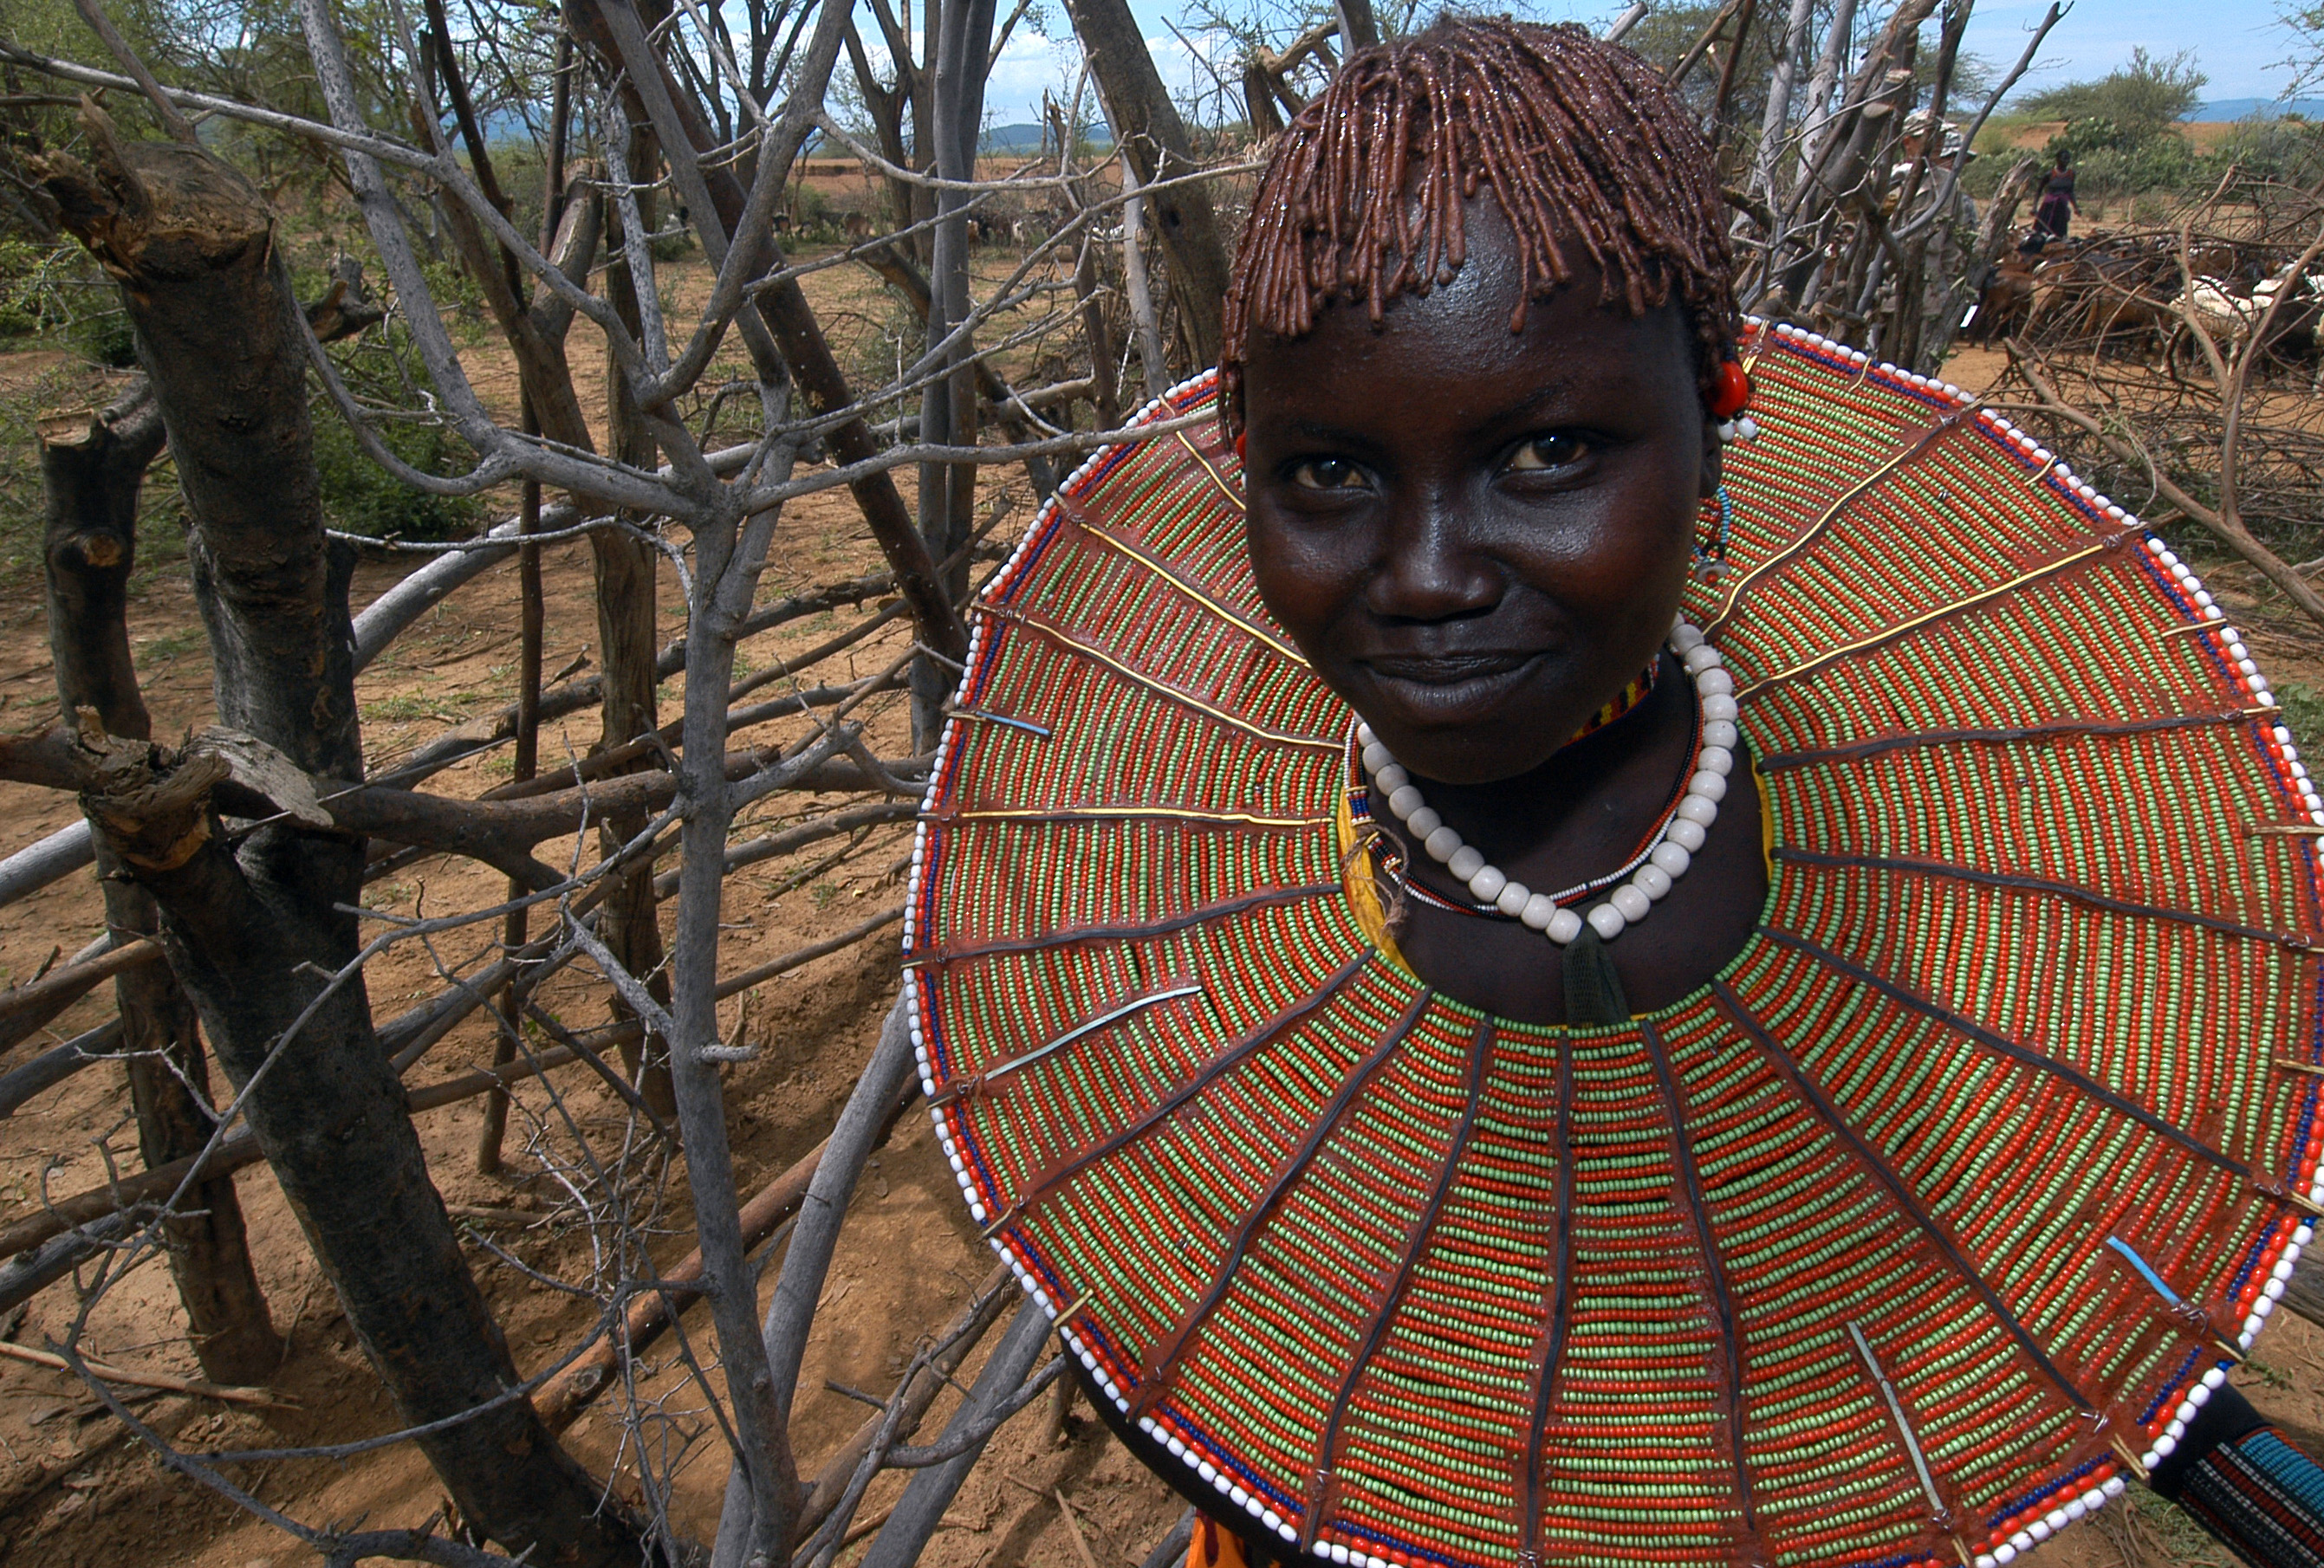 File:US Navy 060815-N-0411D-045 A Pokot girl poses for a ...